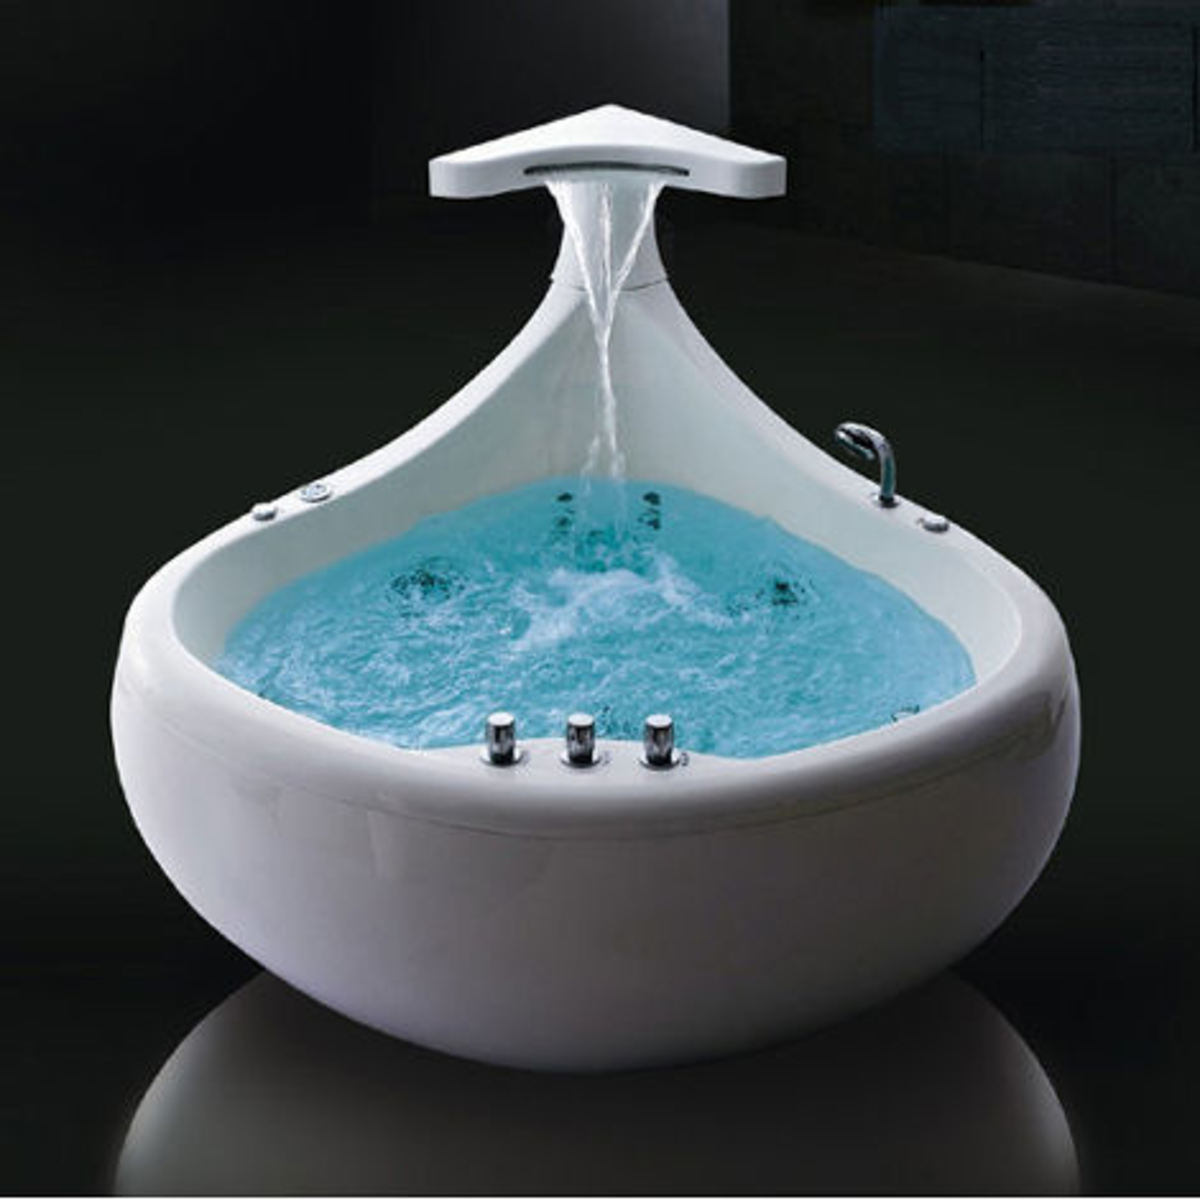 Small Bathtubs: The Whirlpool Tub.